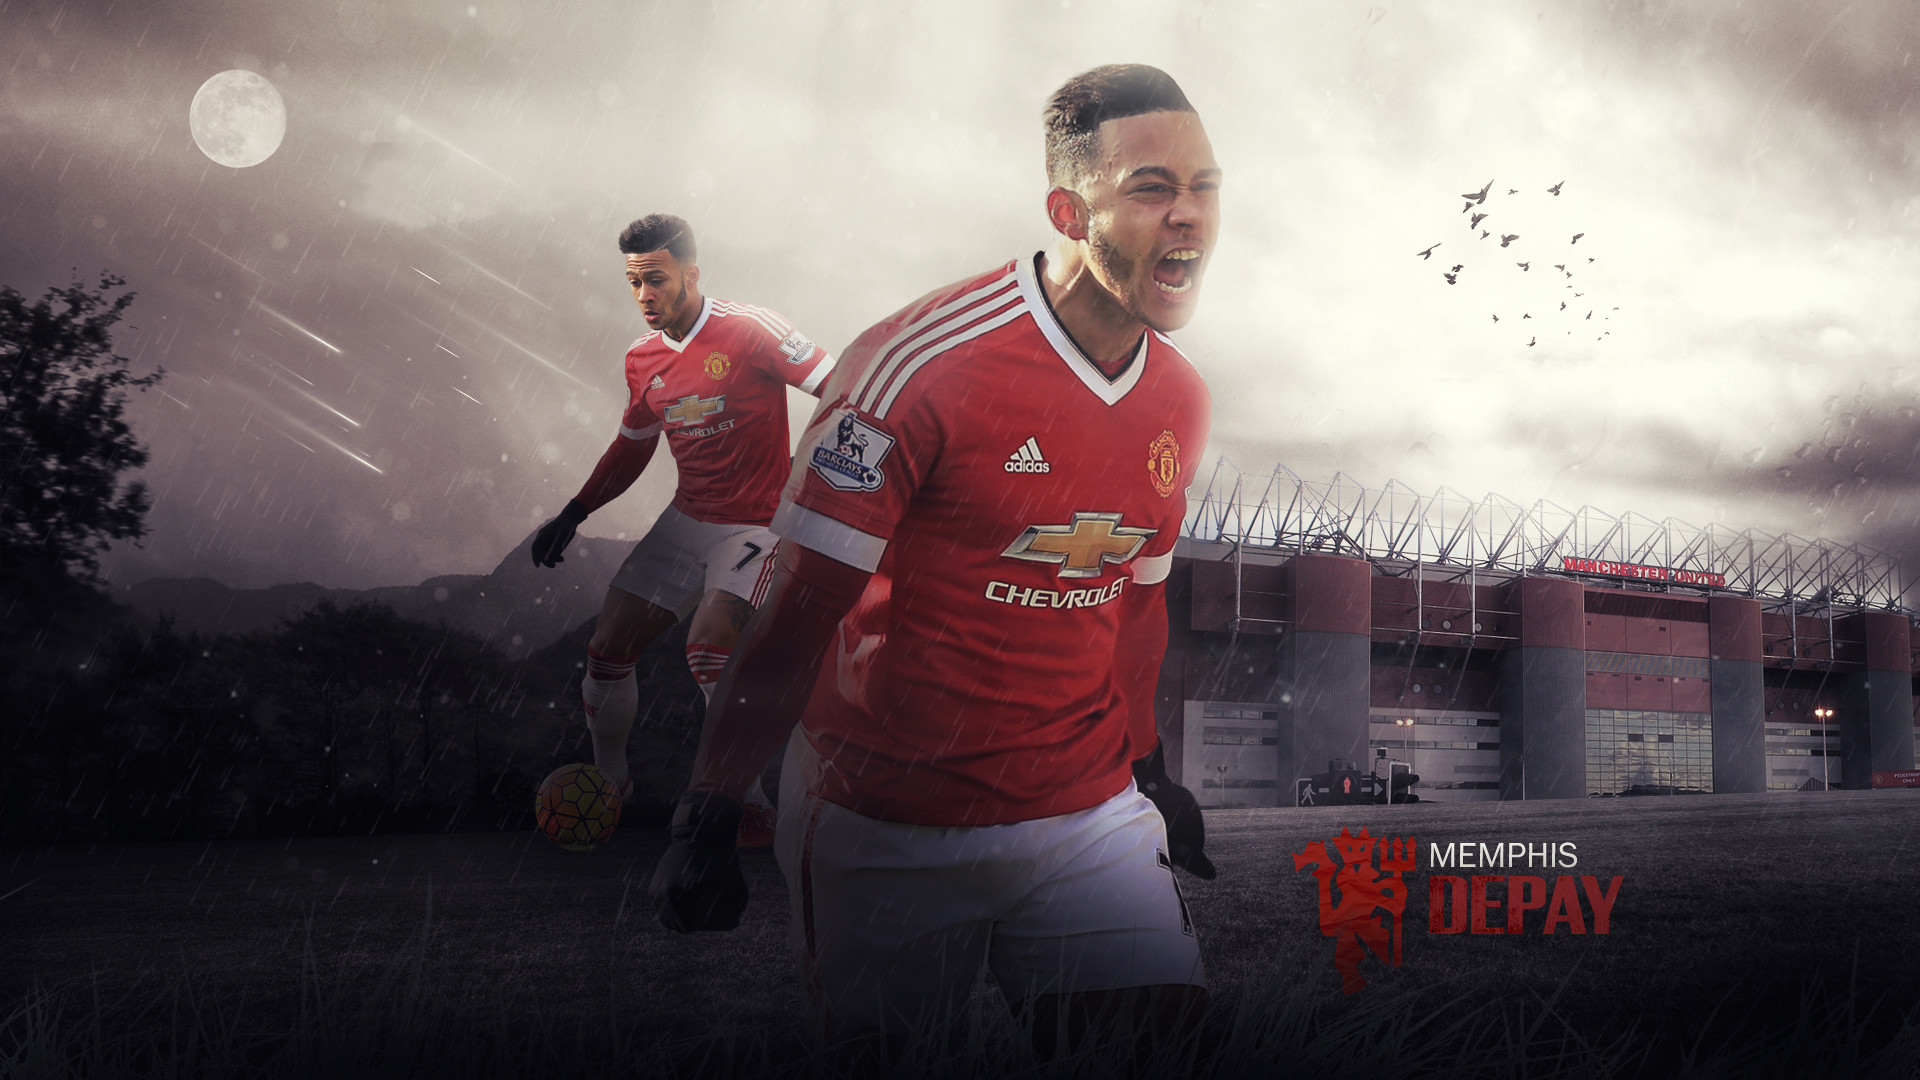 Manchester United Wallpaper Iphone X Anthony Martial Wallpapers 73 Images